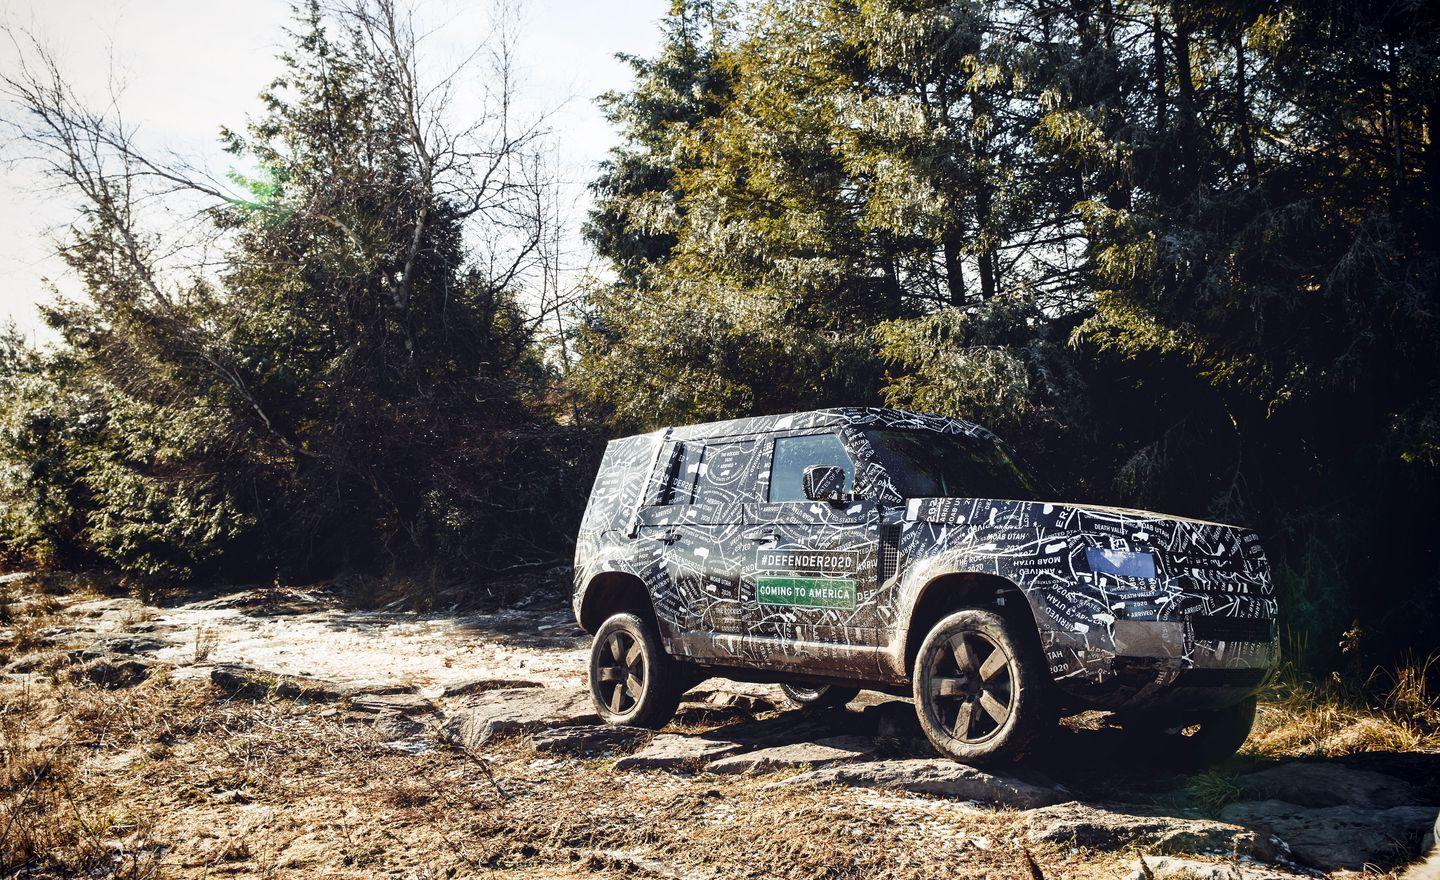 <p>But like with the hazy reveal date, Land Rover has said nothing about the on-sale date of the new Defender besides saying it will be available in 2020.</p>